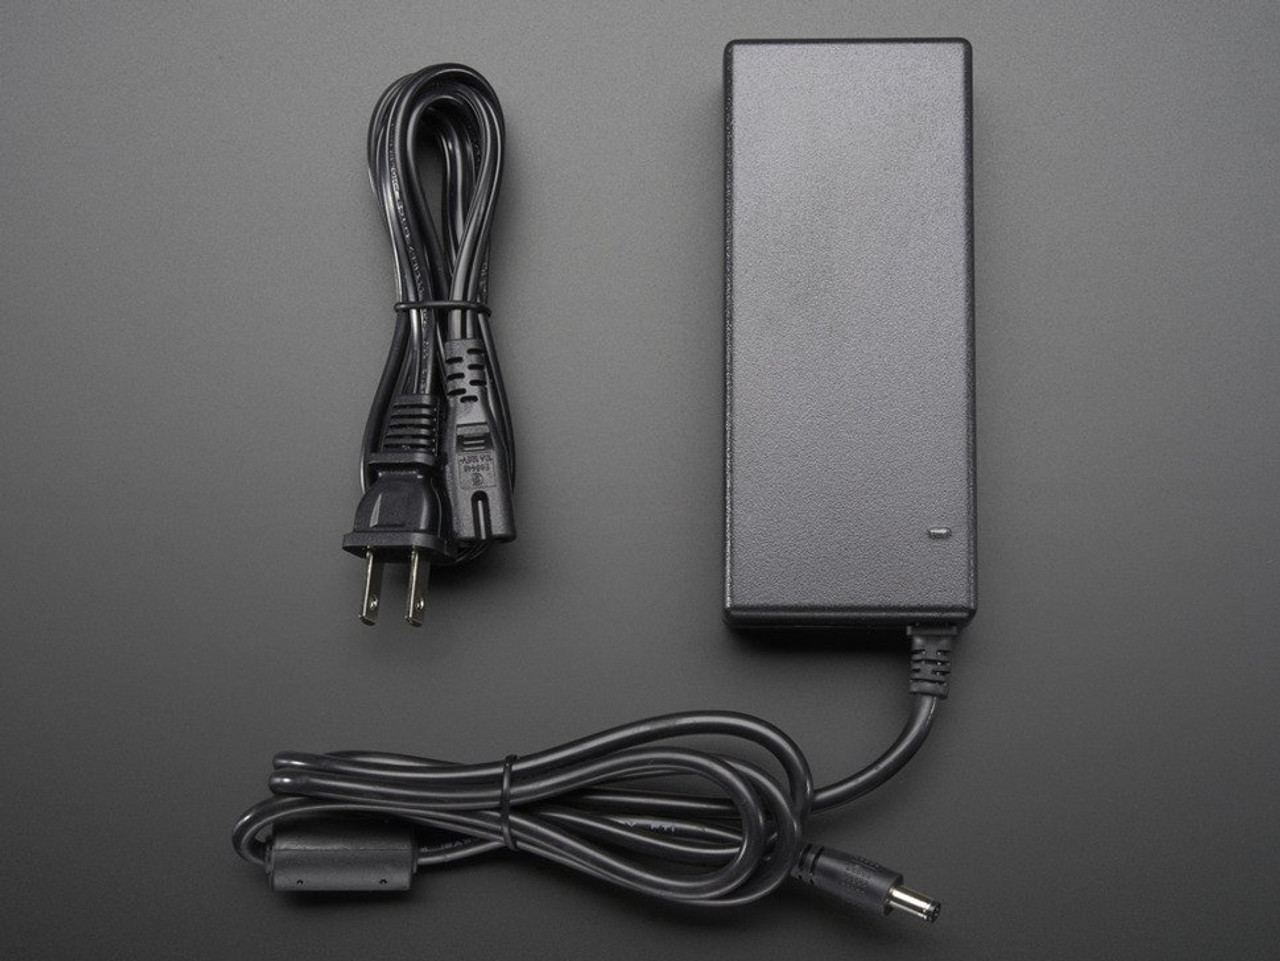 5V 10A switching power supply